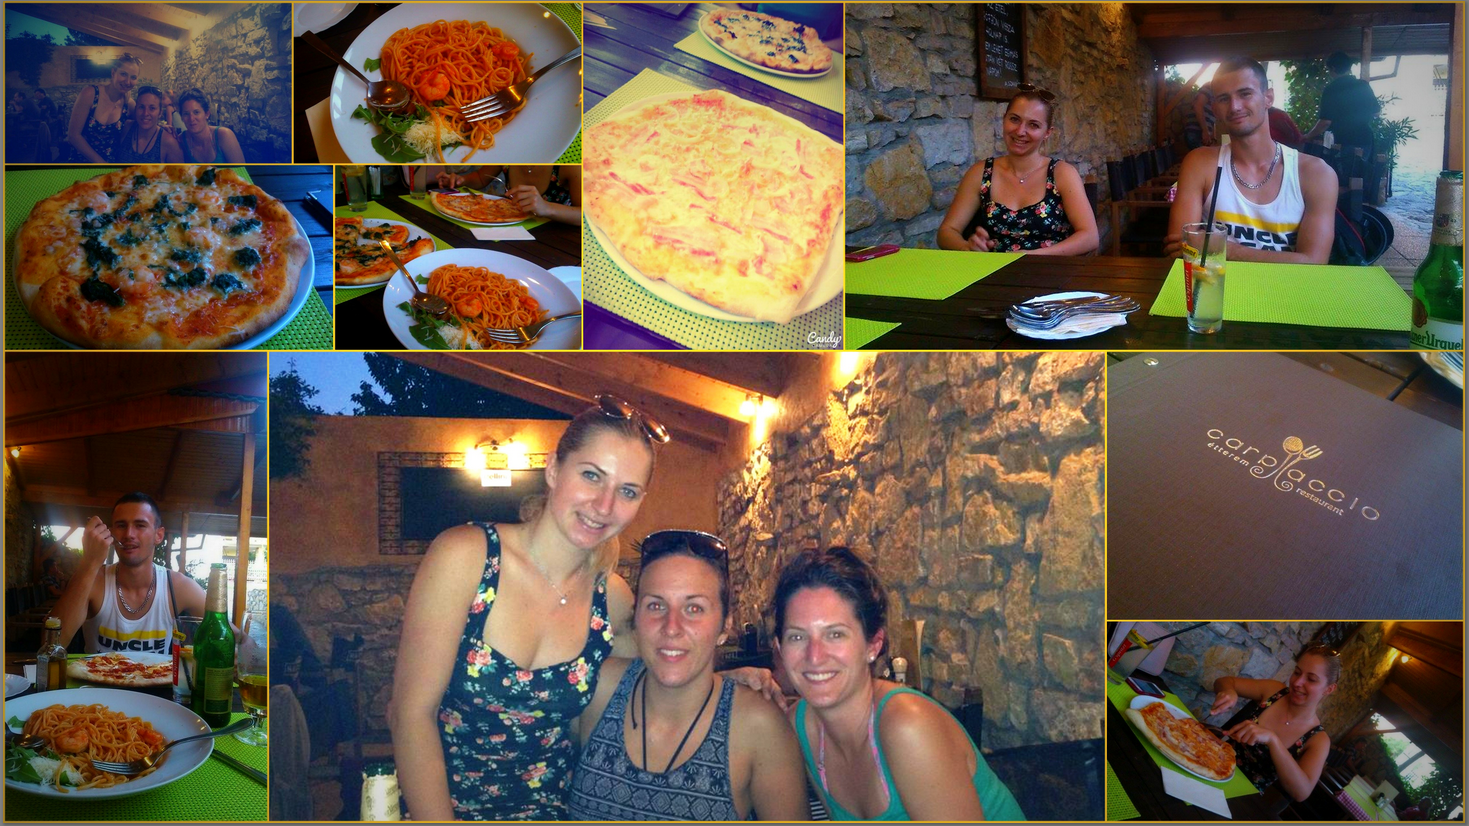 Restaurant Carpaccio finally done! :) 2015.08.30. with my friends.